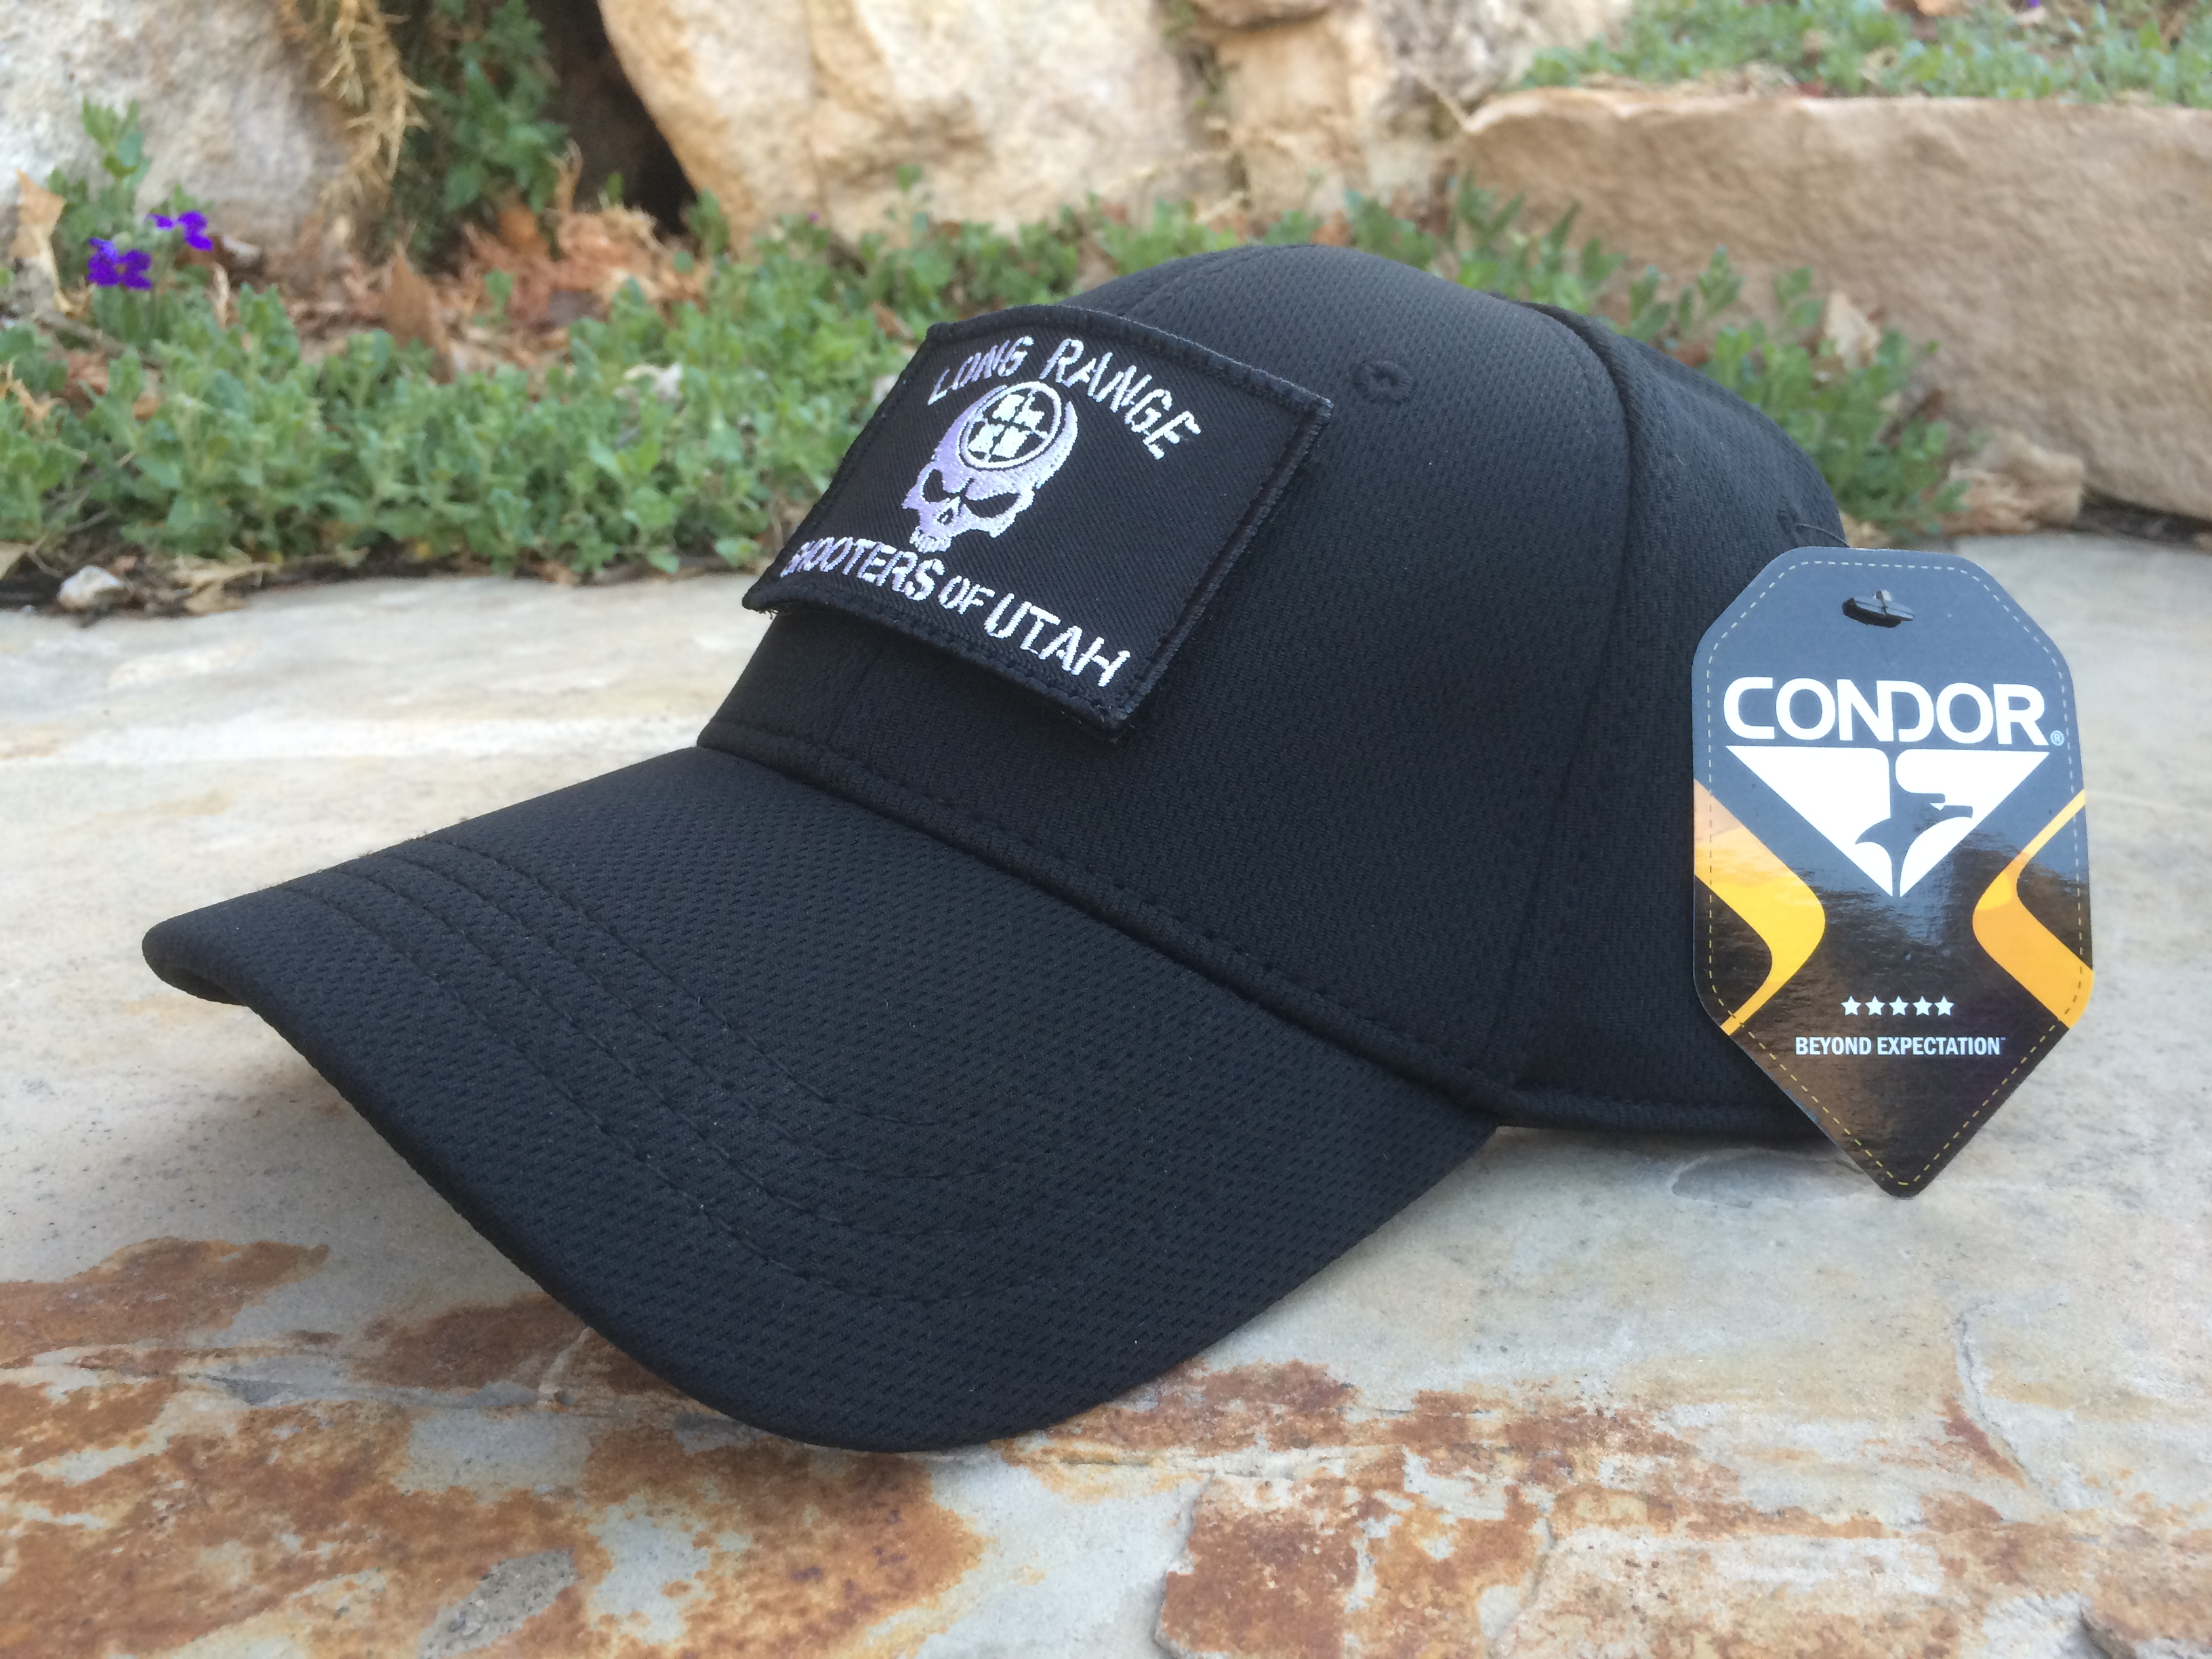 092c3a72ff56a   New for 2015  . Condor Flex Tactical Hats (Flex Fit) with Velcro LRSU  Rifle Logo Patch ...